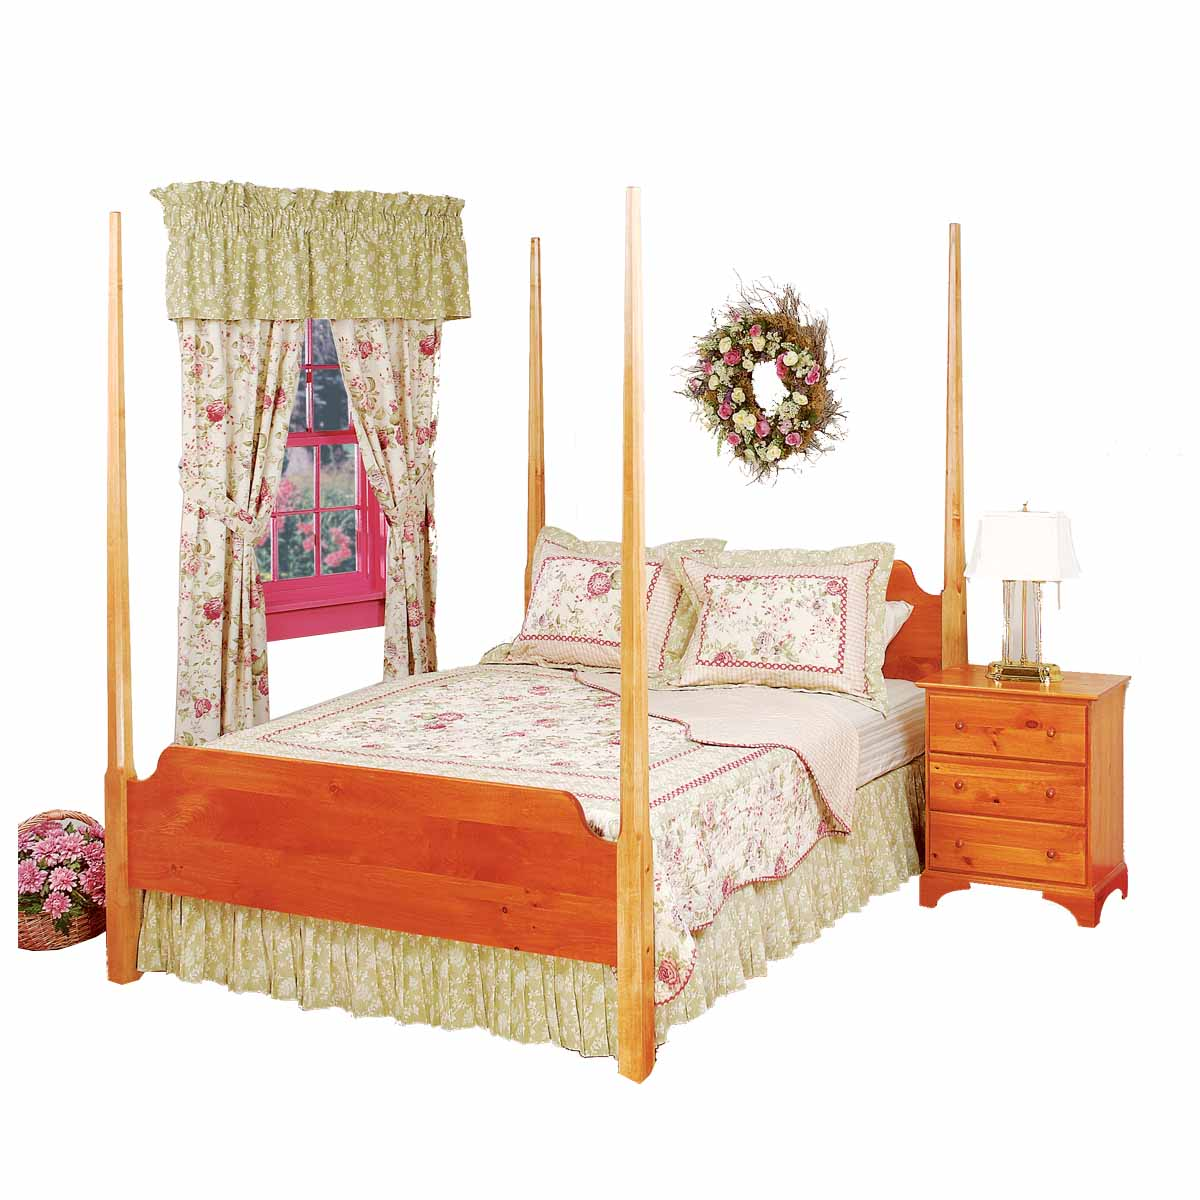 Bed Heirloom Pine Queen Pencil Post Maple Posts